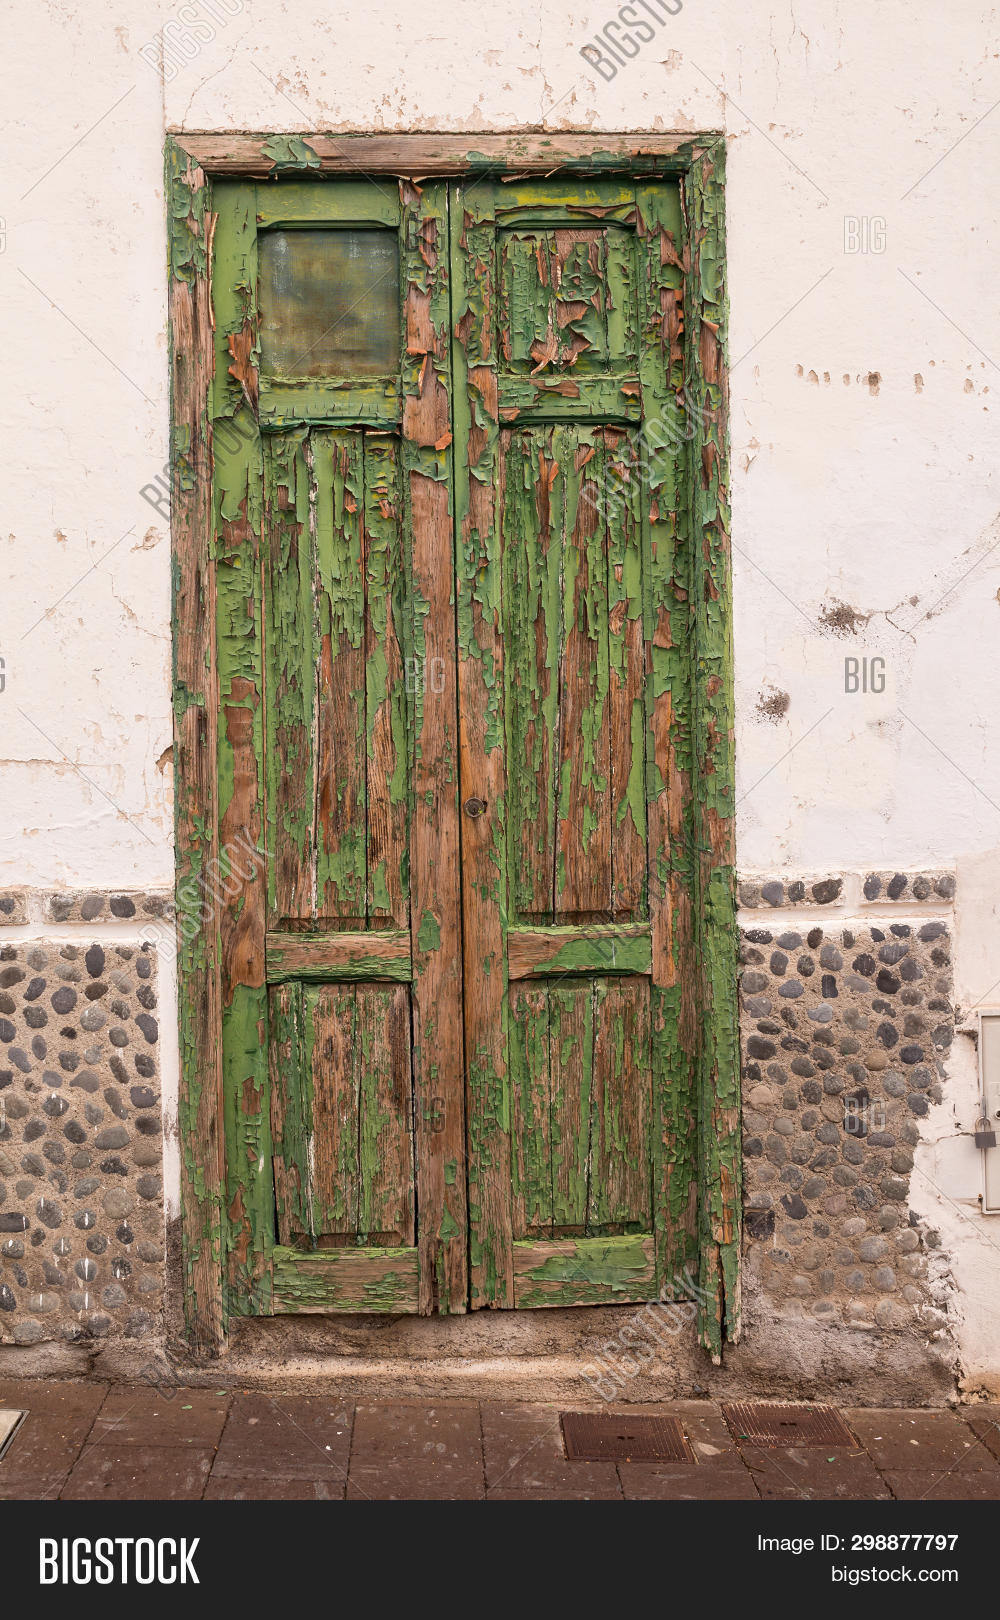 Color Of the Gate In House New Characteristic Green Image & Free Trial